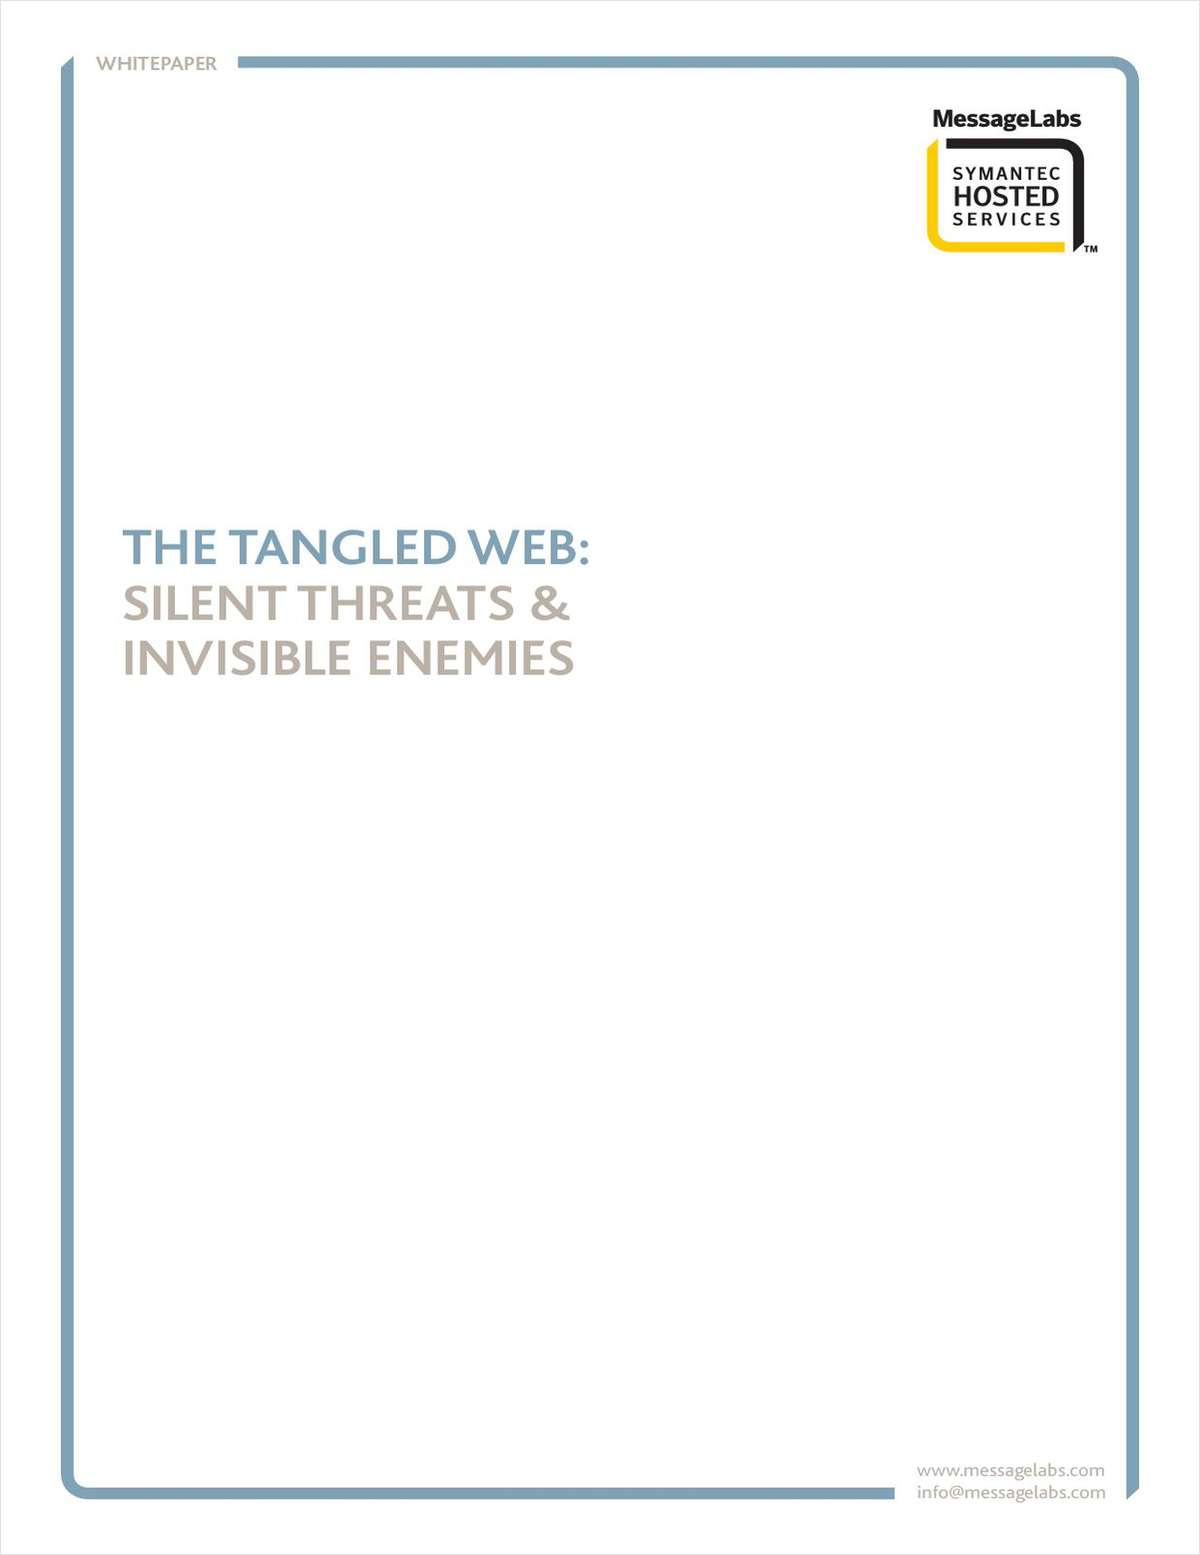 The Tangled Web: Silent Threats & Invisible Enemies